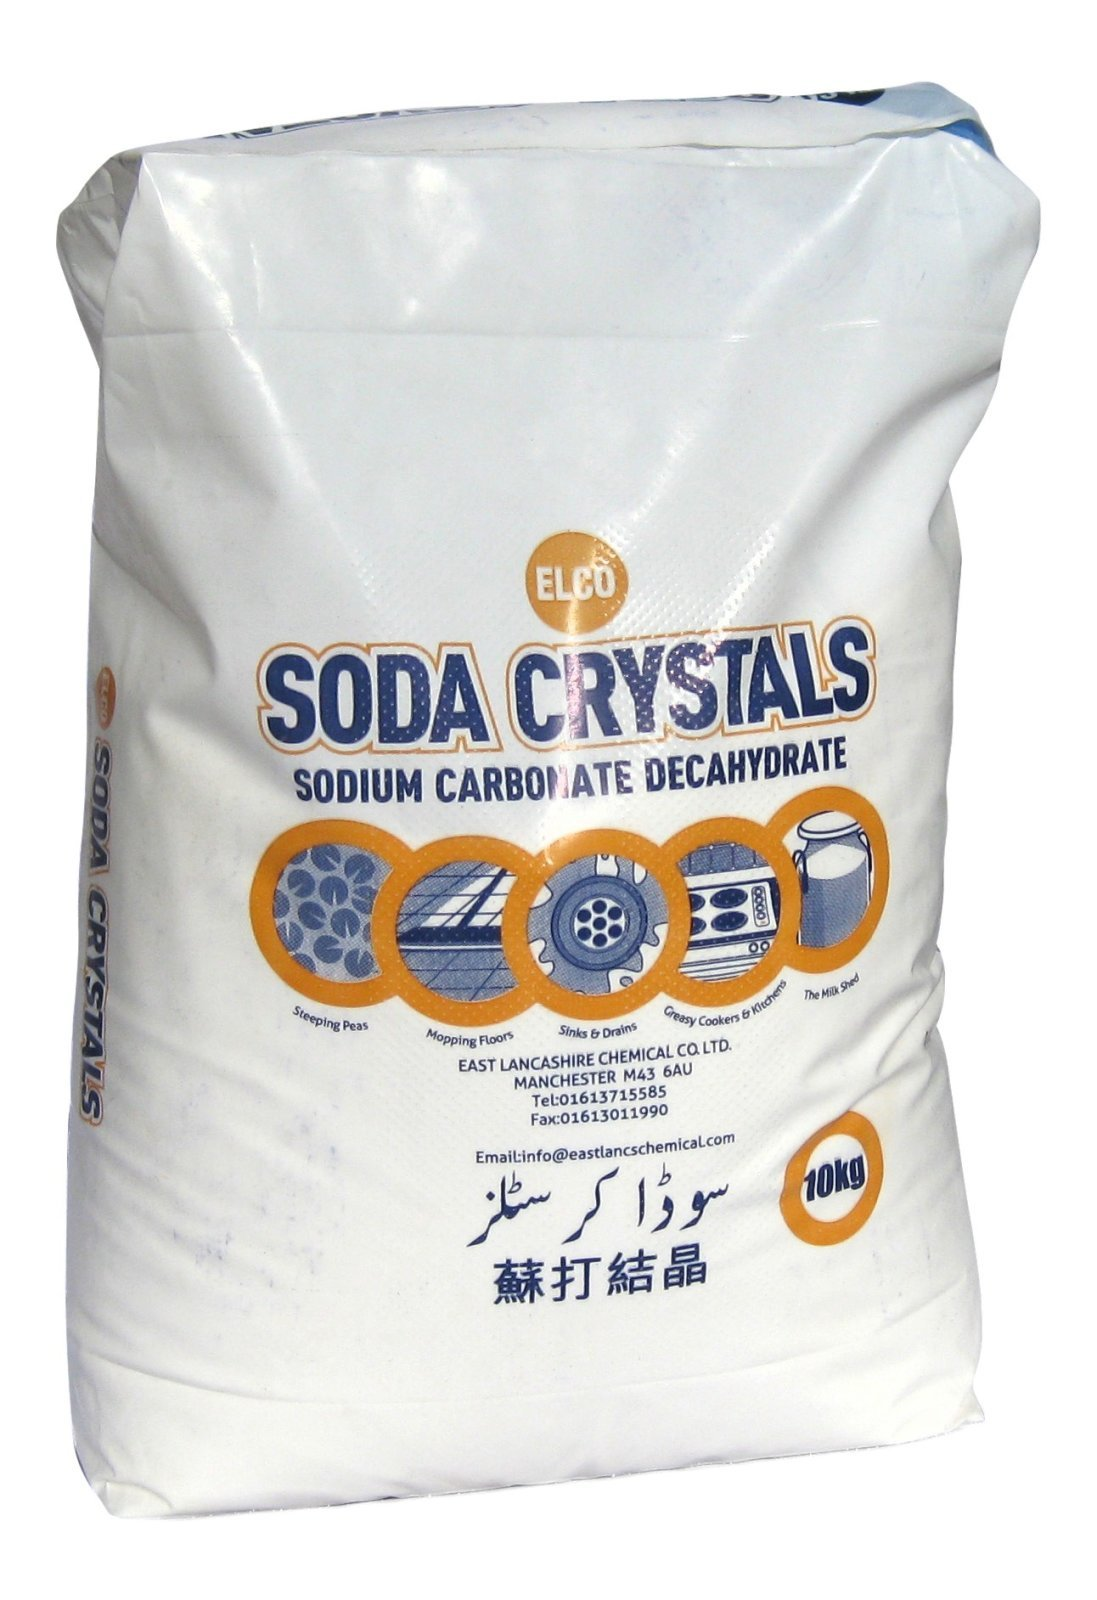 Picture of ELCO Soda Crystals 10kg bulk bag